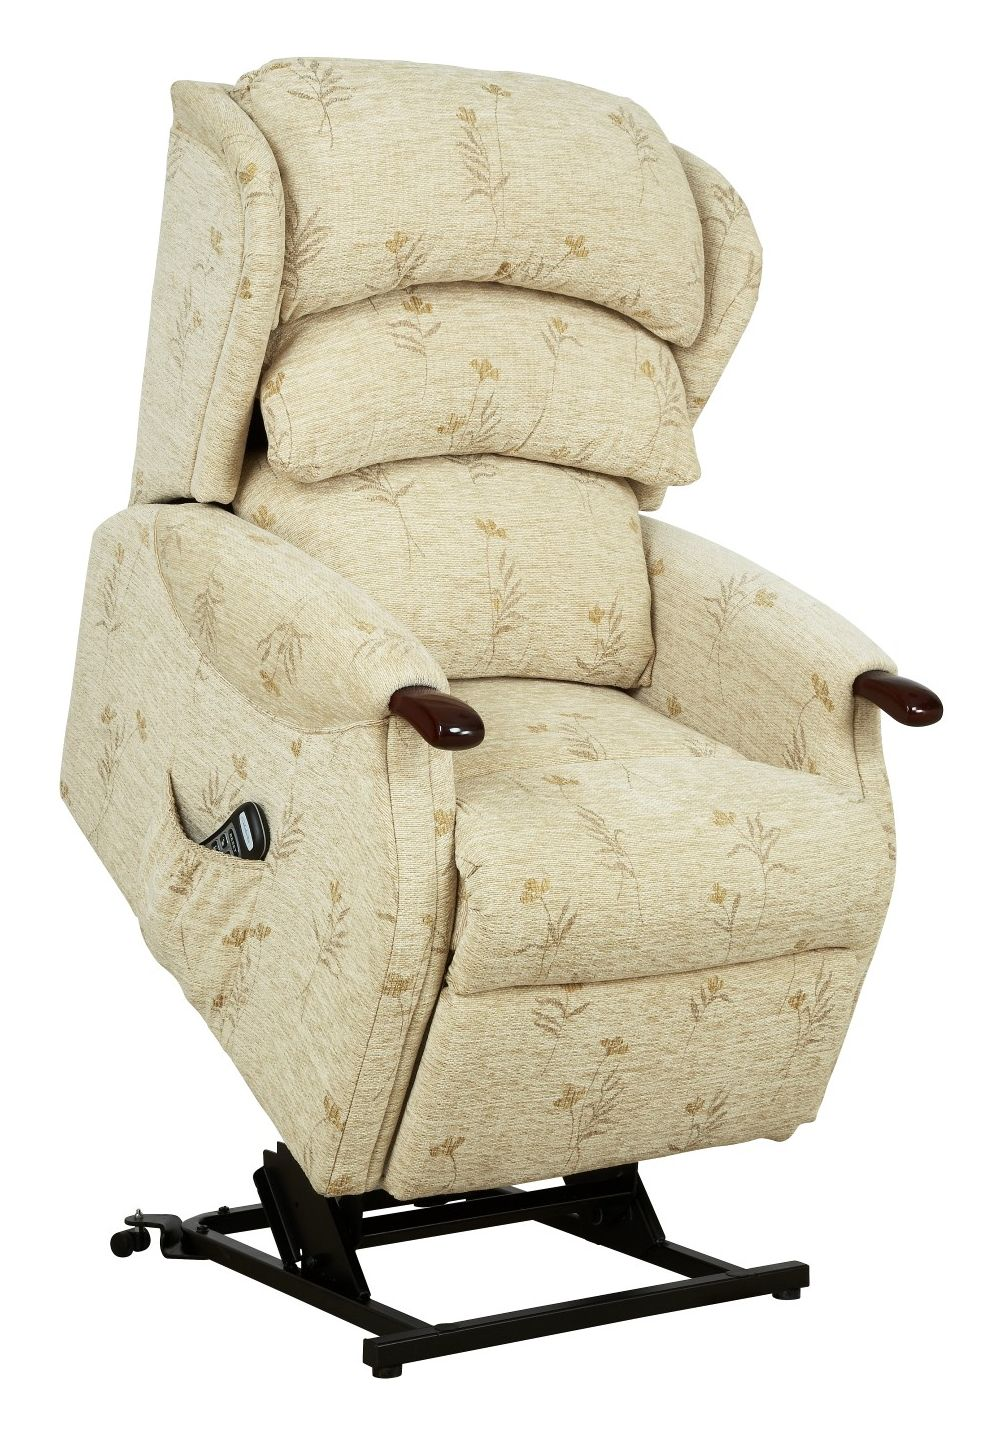 Stupendous Westbury Standard Dual Motor Lift Recliner Fabric Theyellowbook Wood Chair Design Ideas Theyellowbookinfo